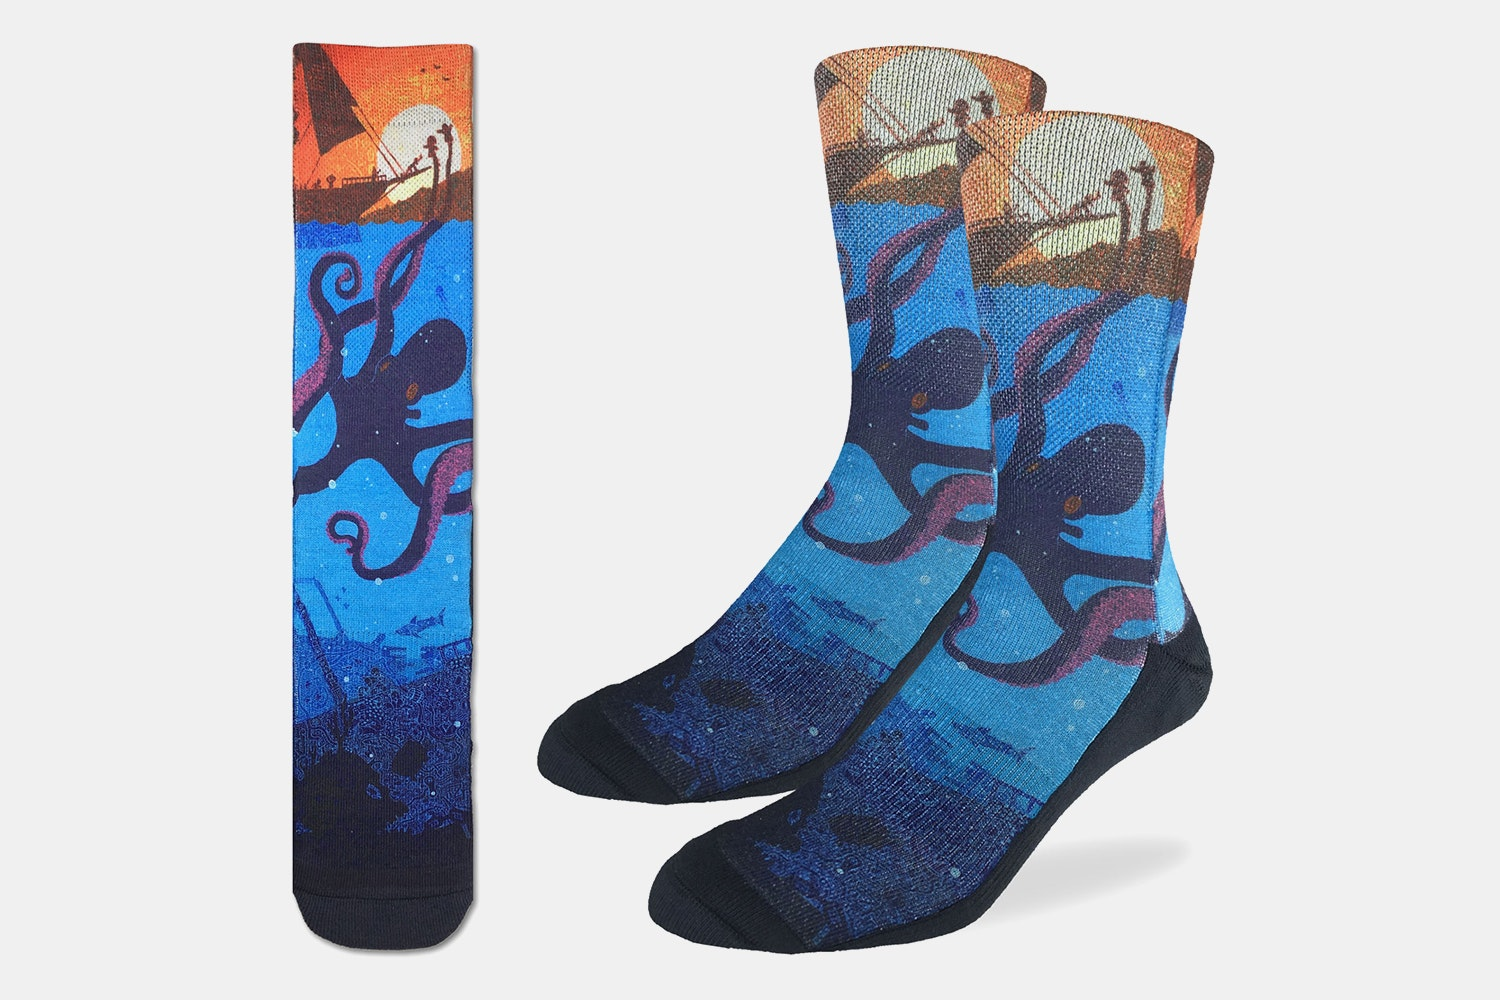 Octopus Active Fit Socks